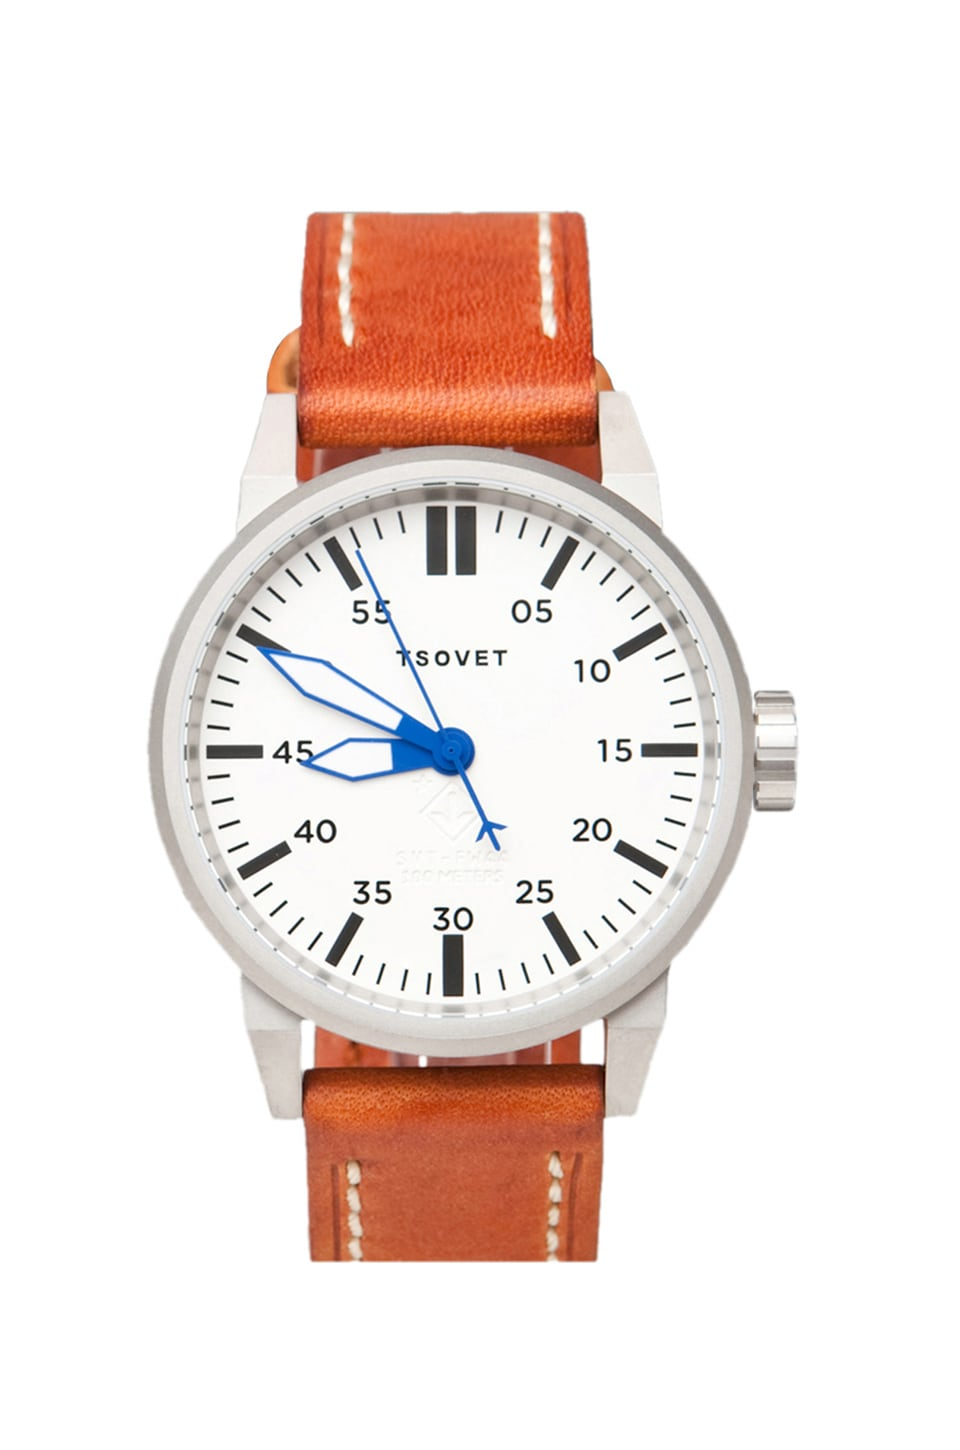 Tsovet SVT-FW44 Dial in Rust w/ Blue